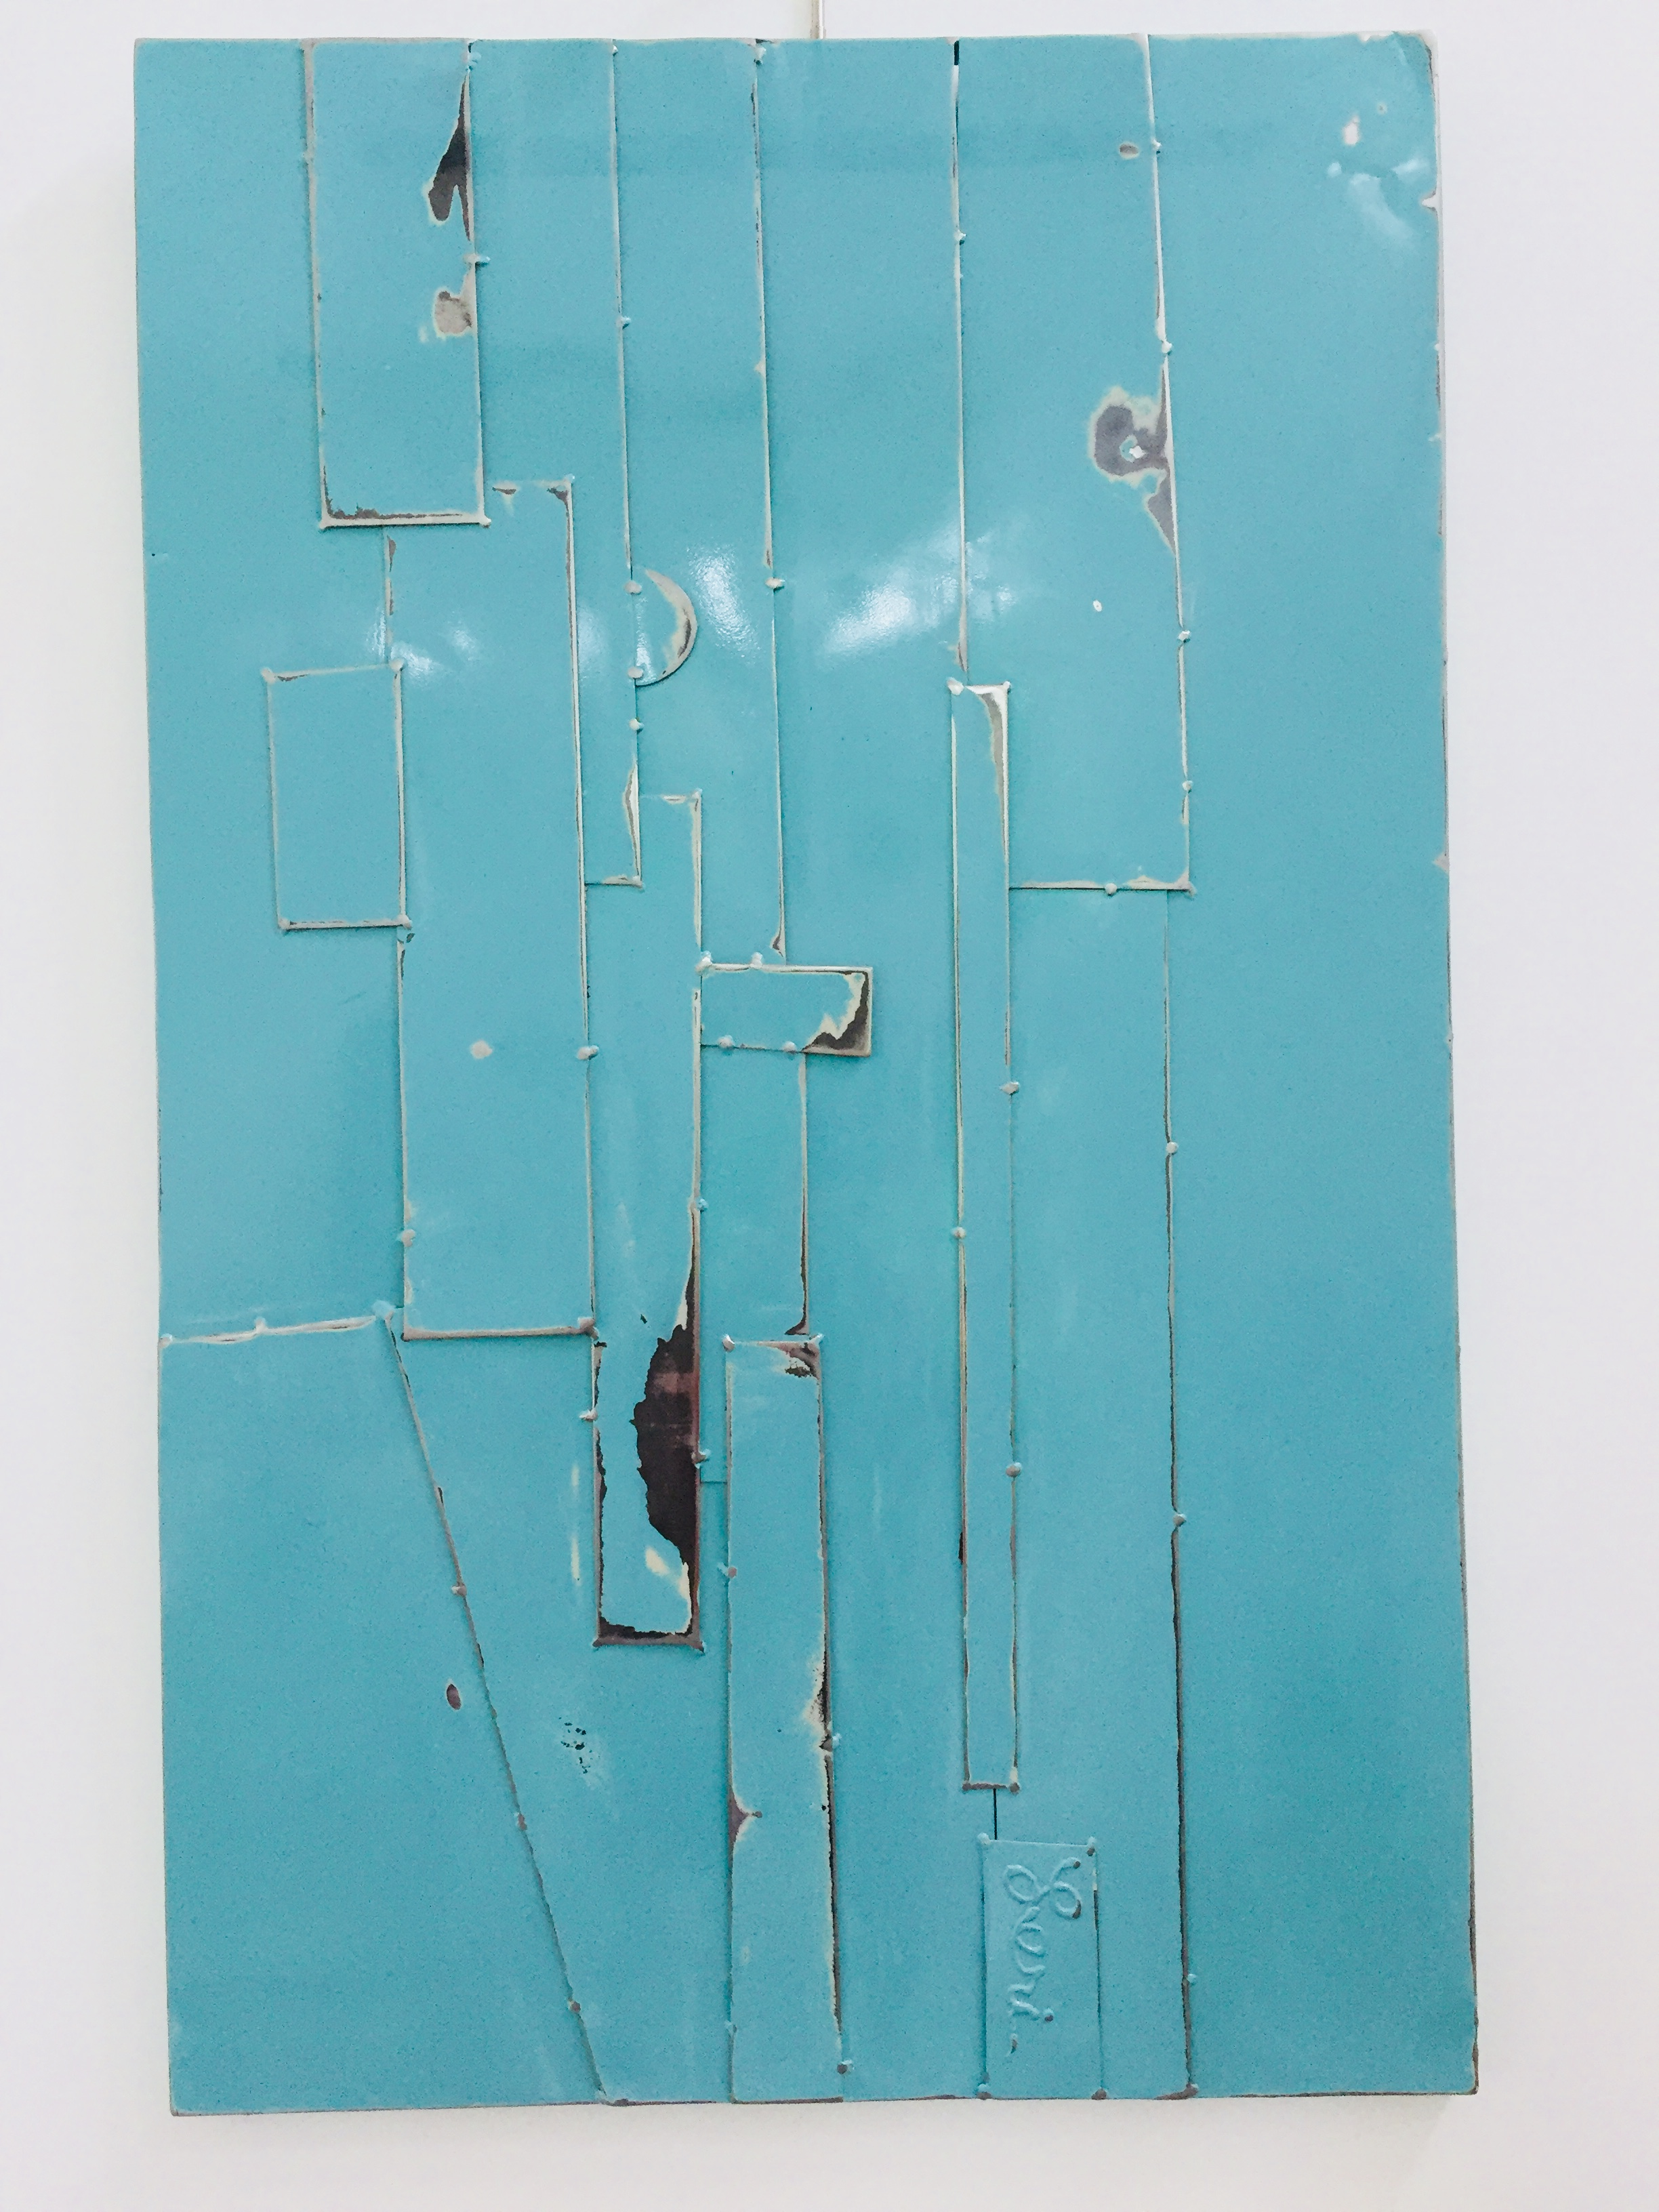 Turquoise, 2016, painted welded steel, 48 x 30 in, $8,000